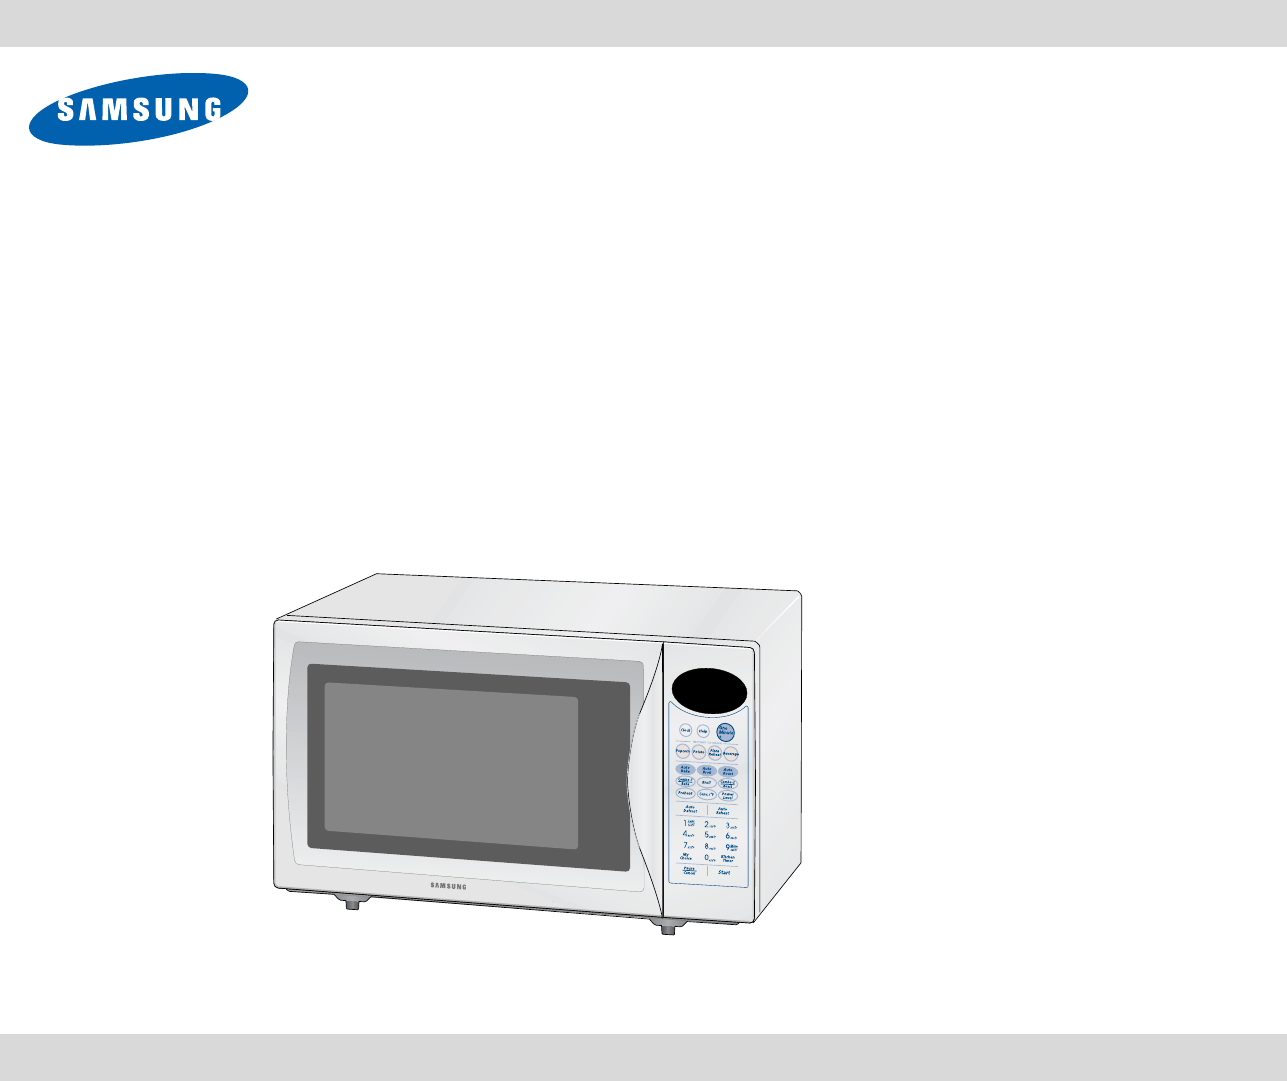 Samsung Microwave Oven MC1015WB/BB User Guide